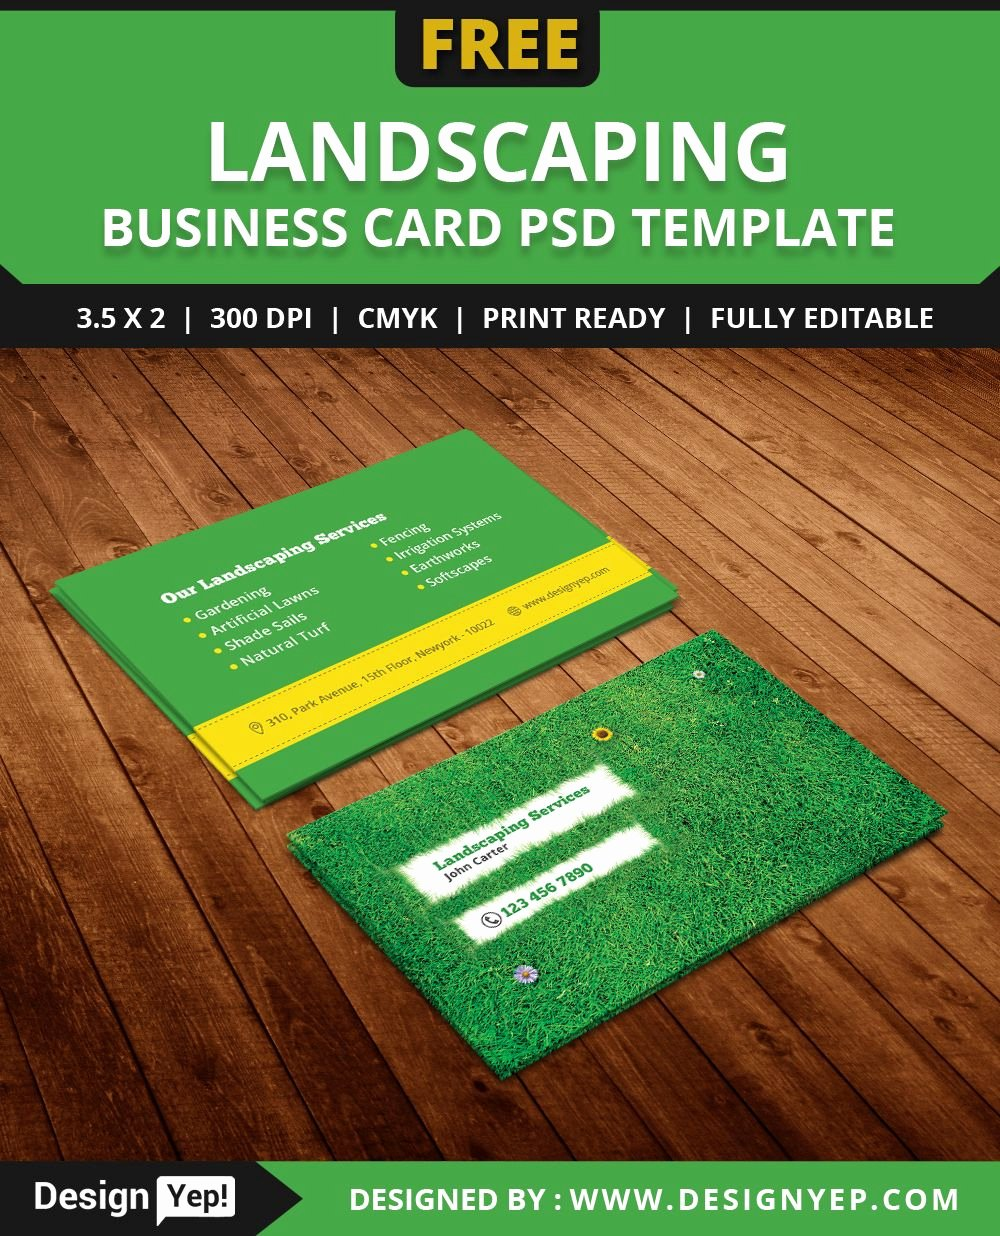 Landscaping Business Cards Ideas New Free Landscaping Business Card Template Psd Free Business Card